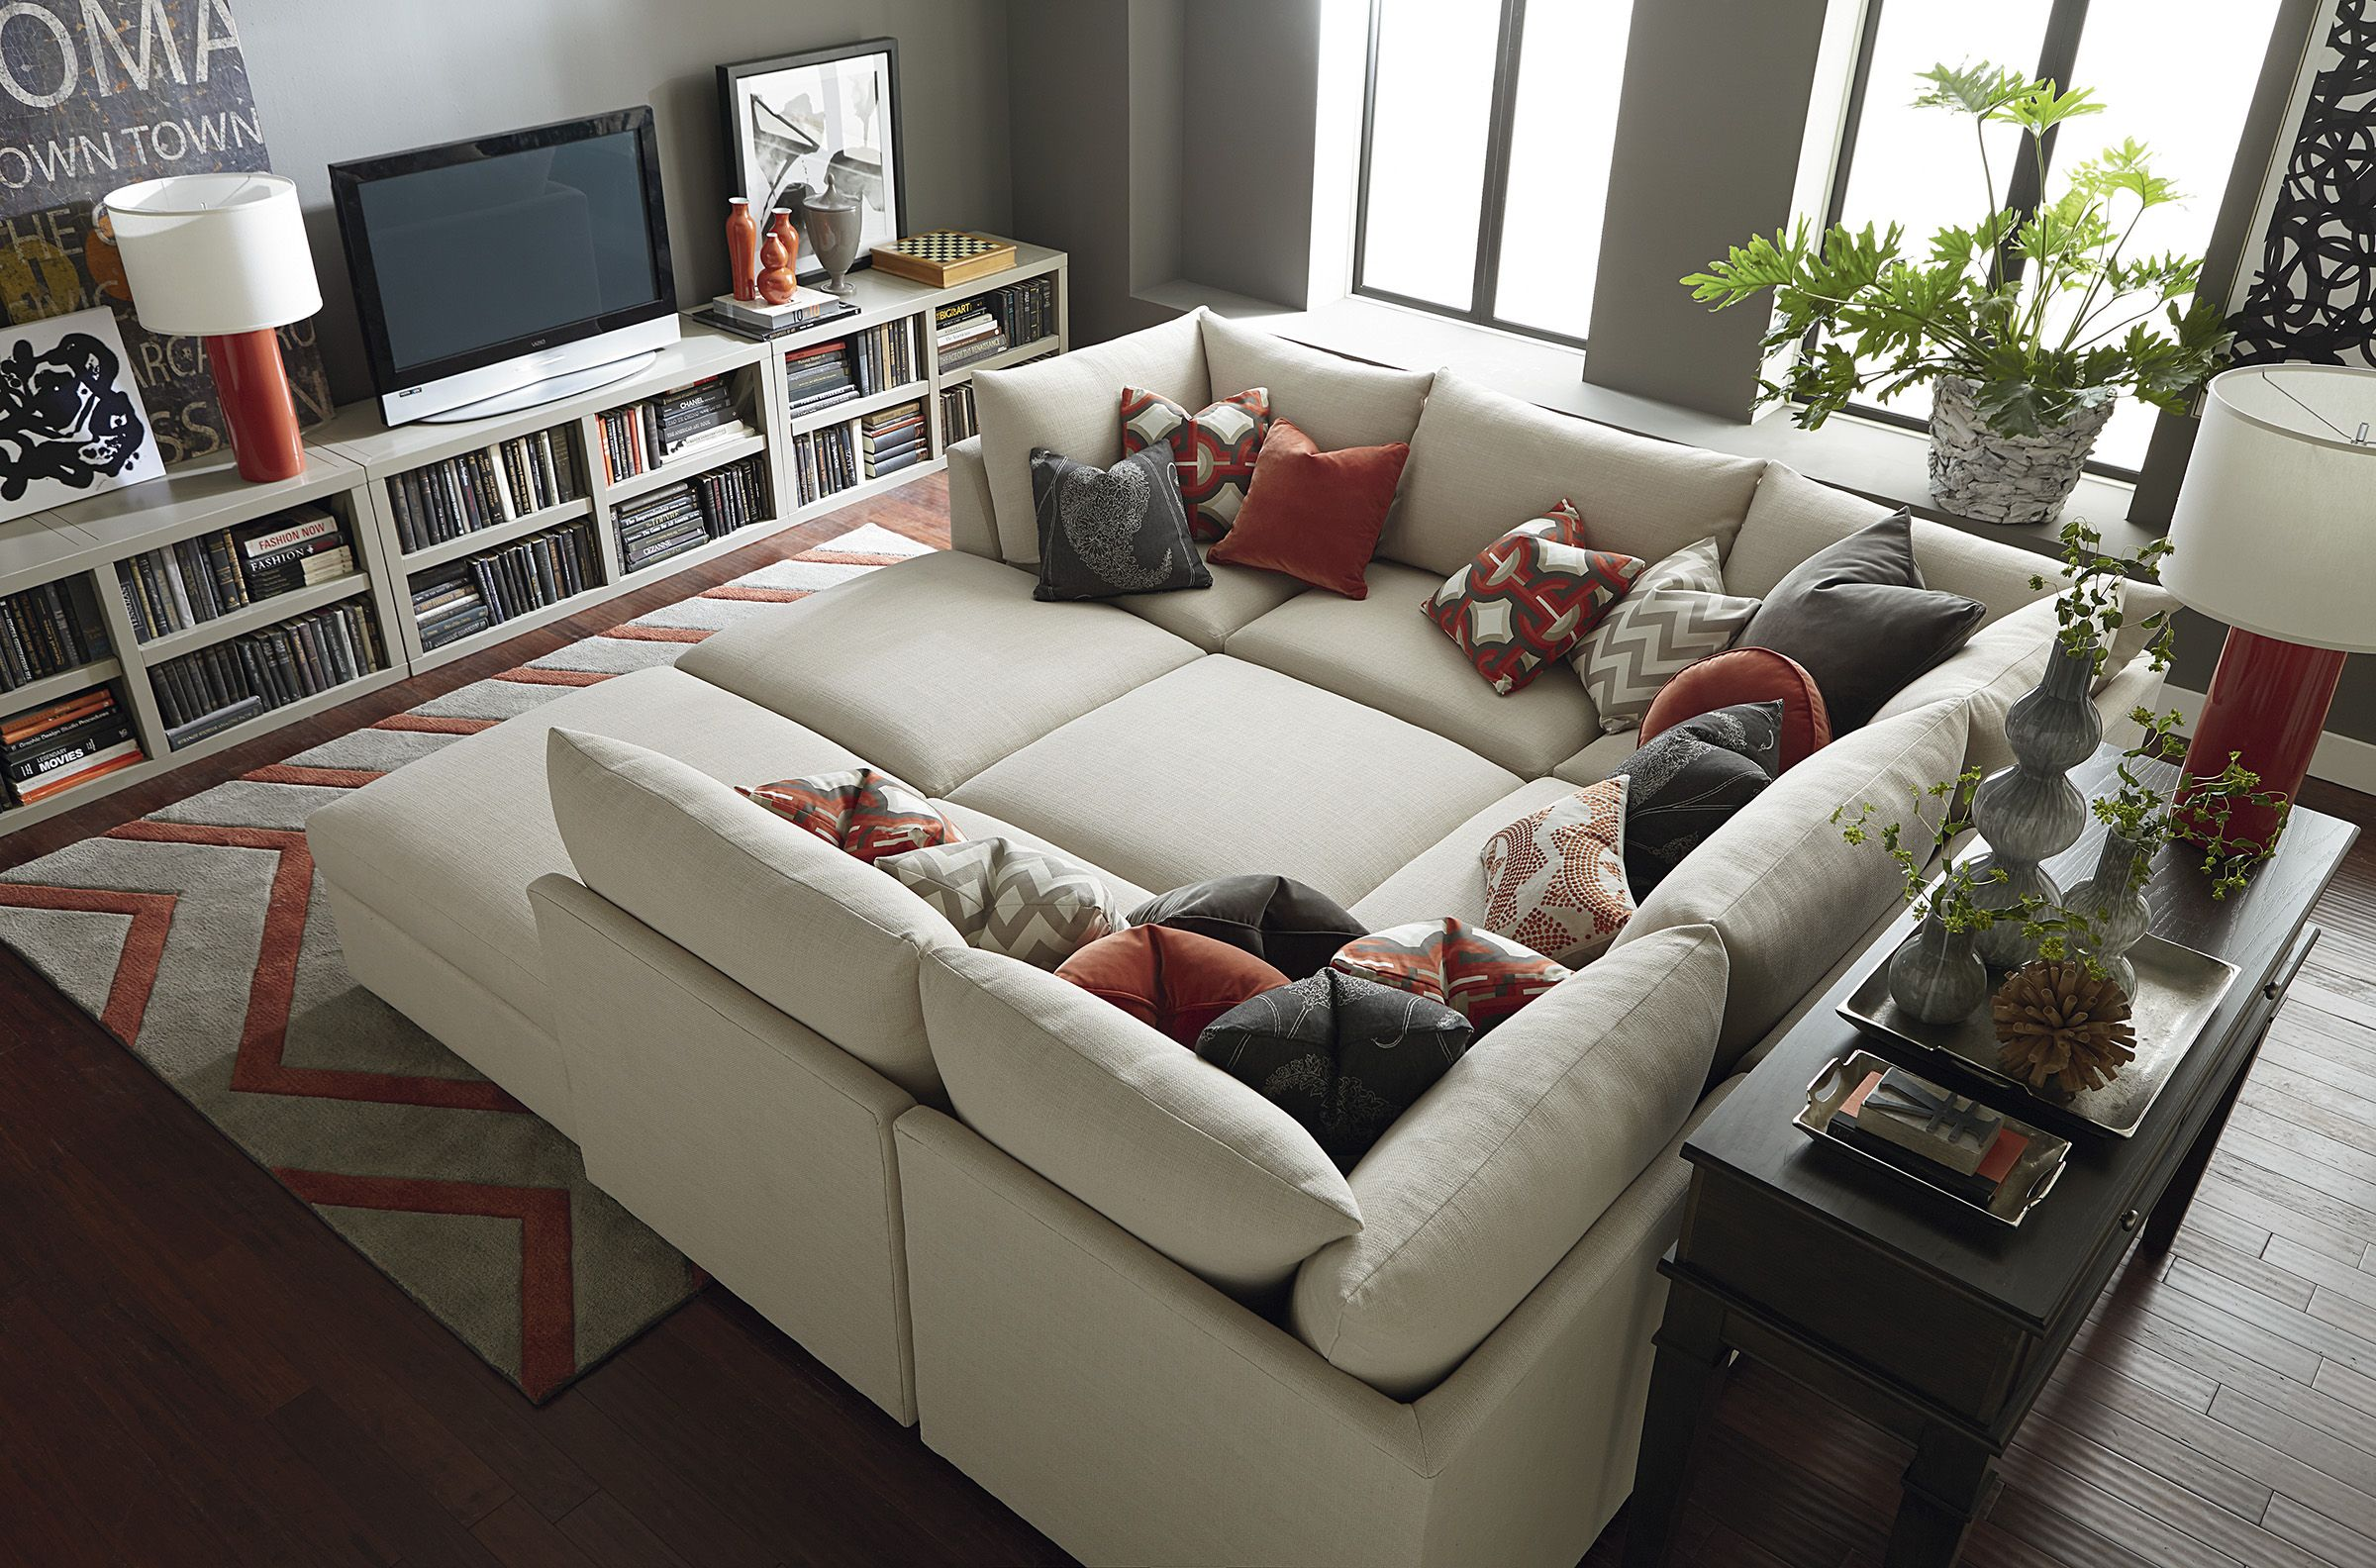 Xxl Sessel Roqu Missing Product In 2019 Pivot Home Pit Couch Pit Sectional